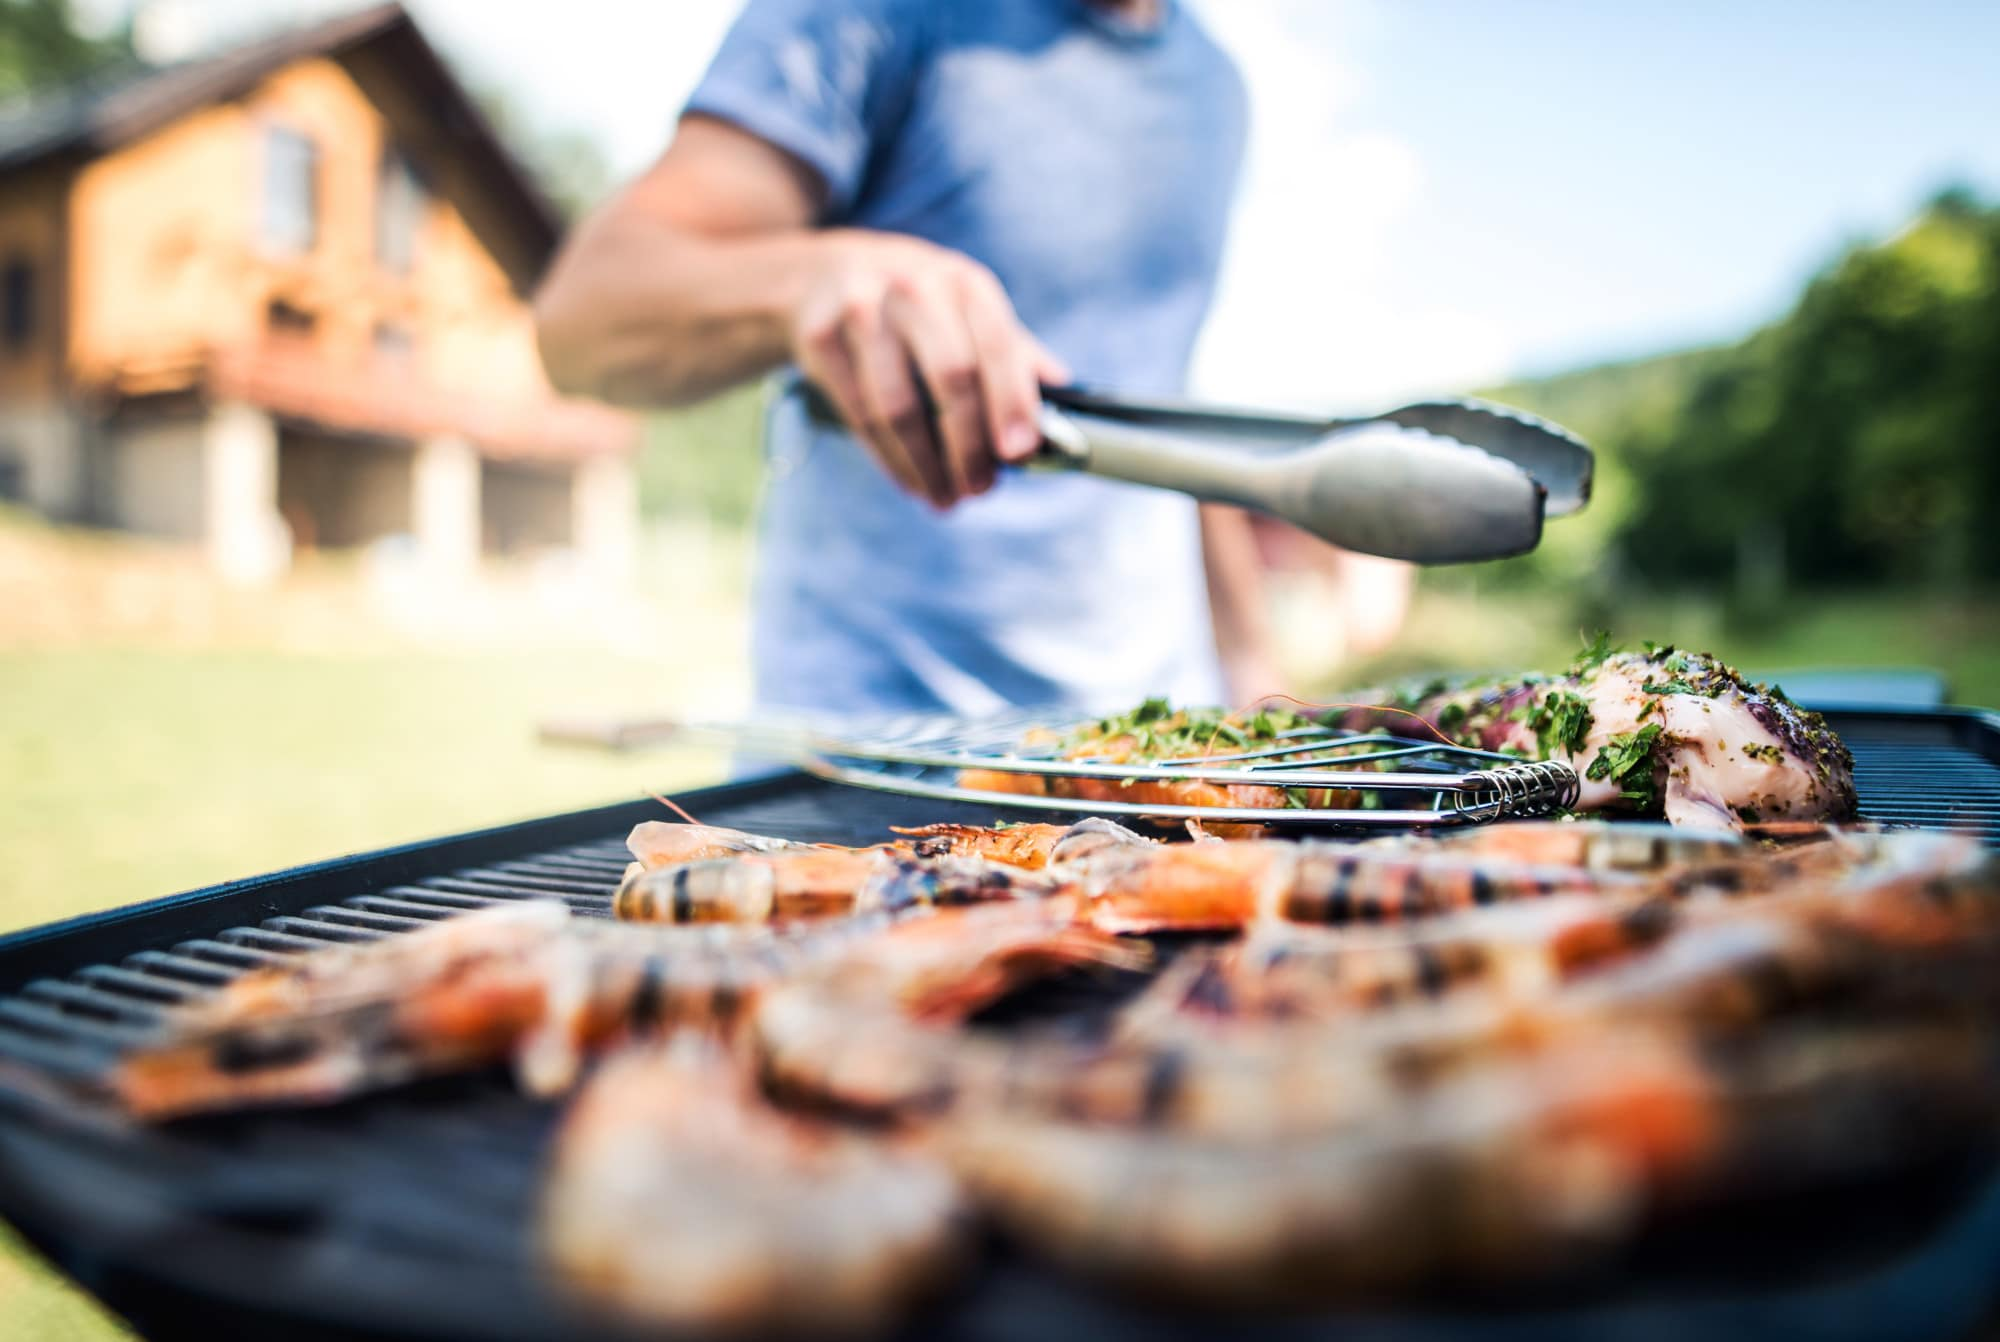 15 Best BBQ Tools Every Grill Master Should Have